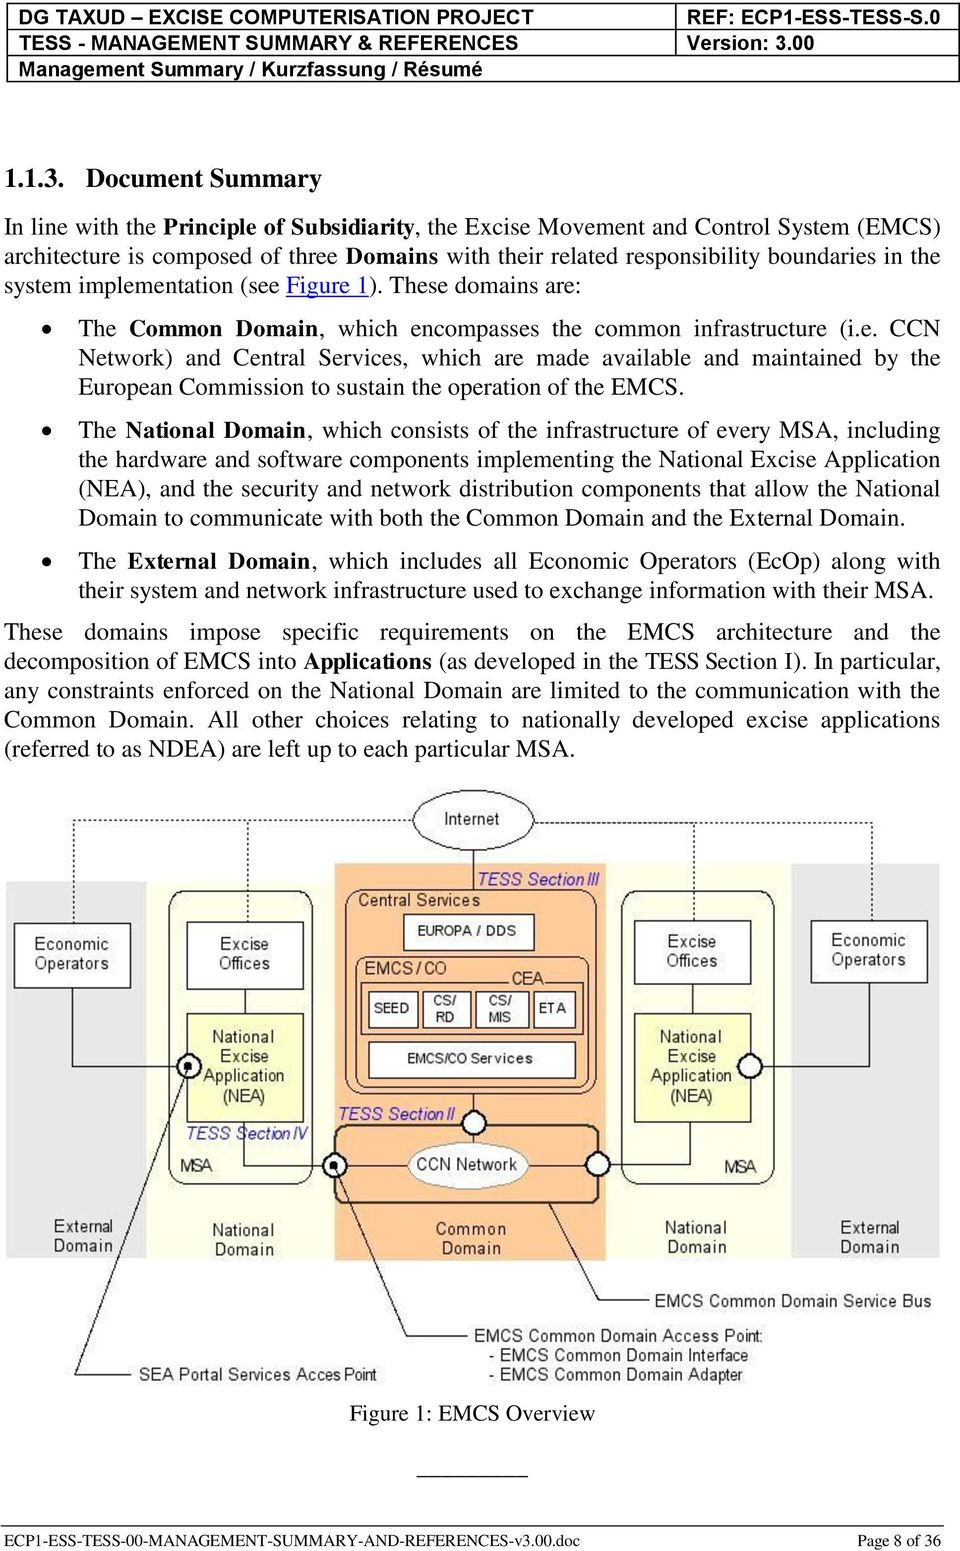 the system implementation (see Figure 1). These domains are: The Common Domain, which encompasses the common infrastructure (i.e. CCN Network) and Central Services, which are made available and maintained by the European Commission to sustain the operation of the EMCS.